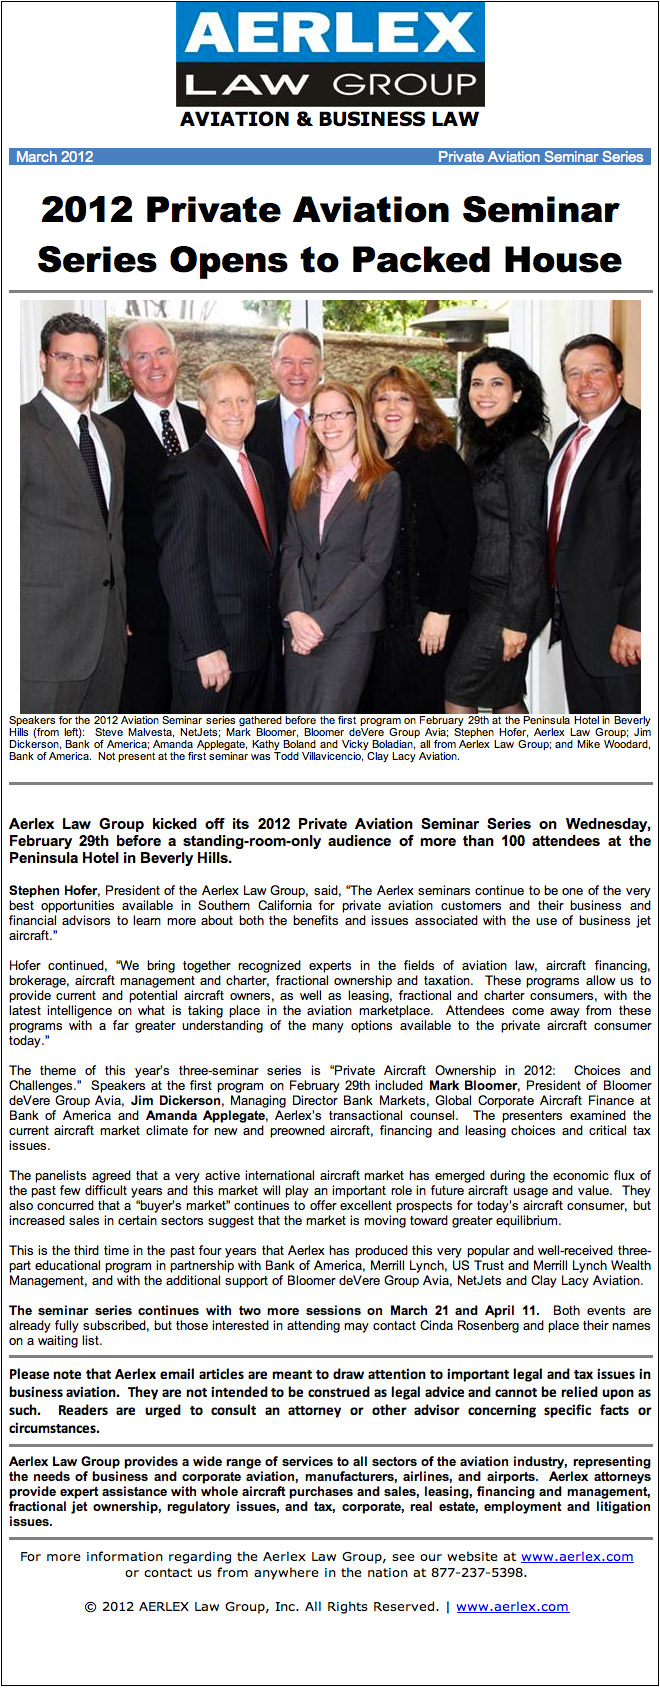 Aerlex Law Group Newsletter - March 2012